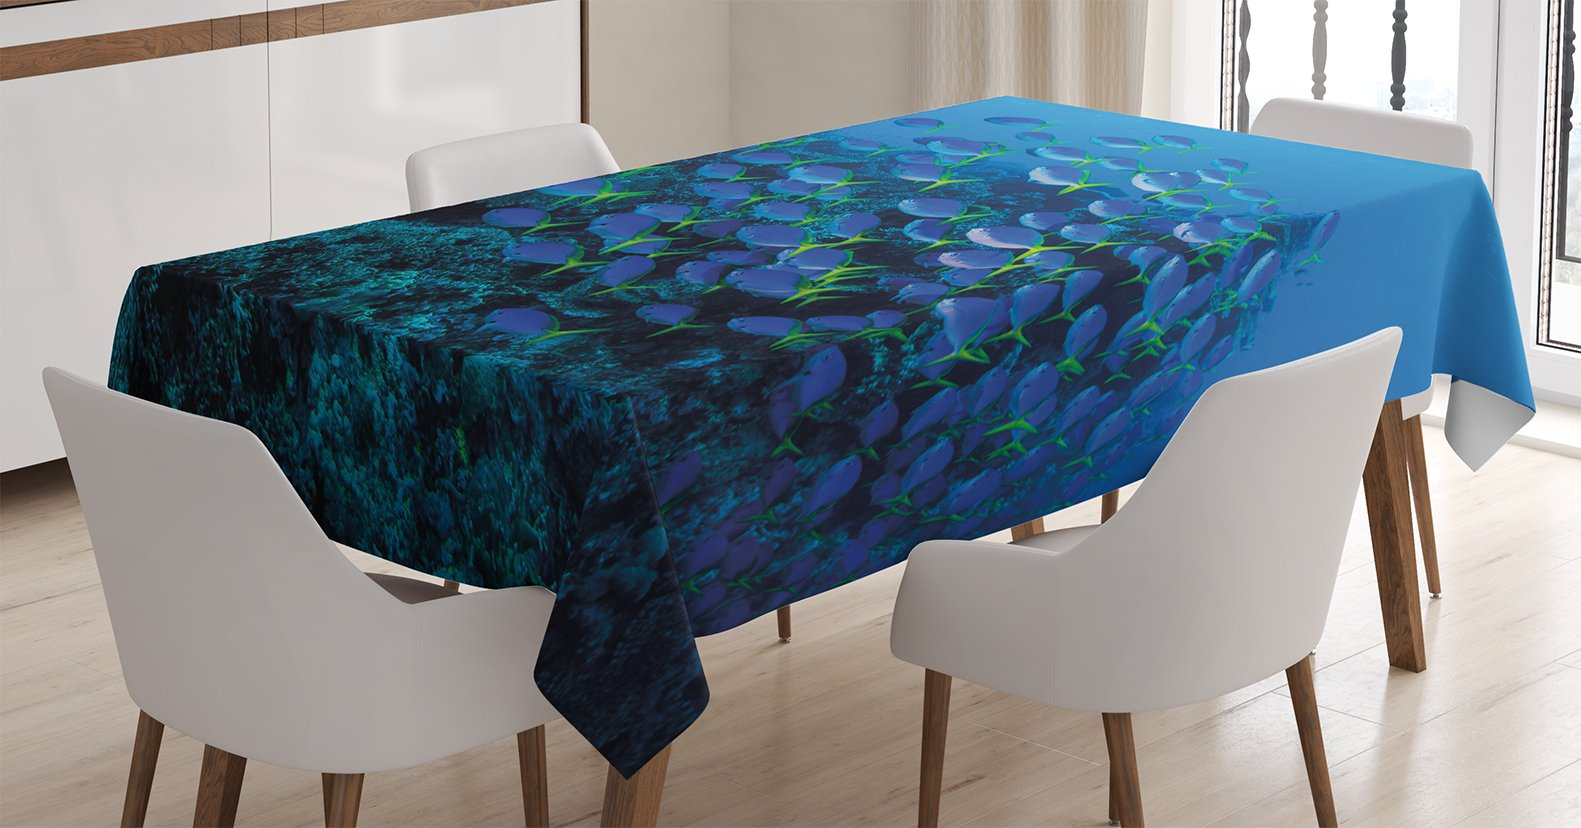 Ambesonne Ocean Decor Tablecloth, Shoal of Fish on Stony Plant Animals in Submarine and Sun Beams on The Surface Image, Dining Room Kitchen Rectangular Table Cover, 60 W X 84 L inches, Multi